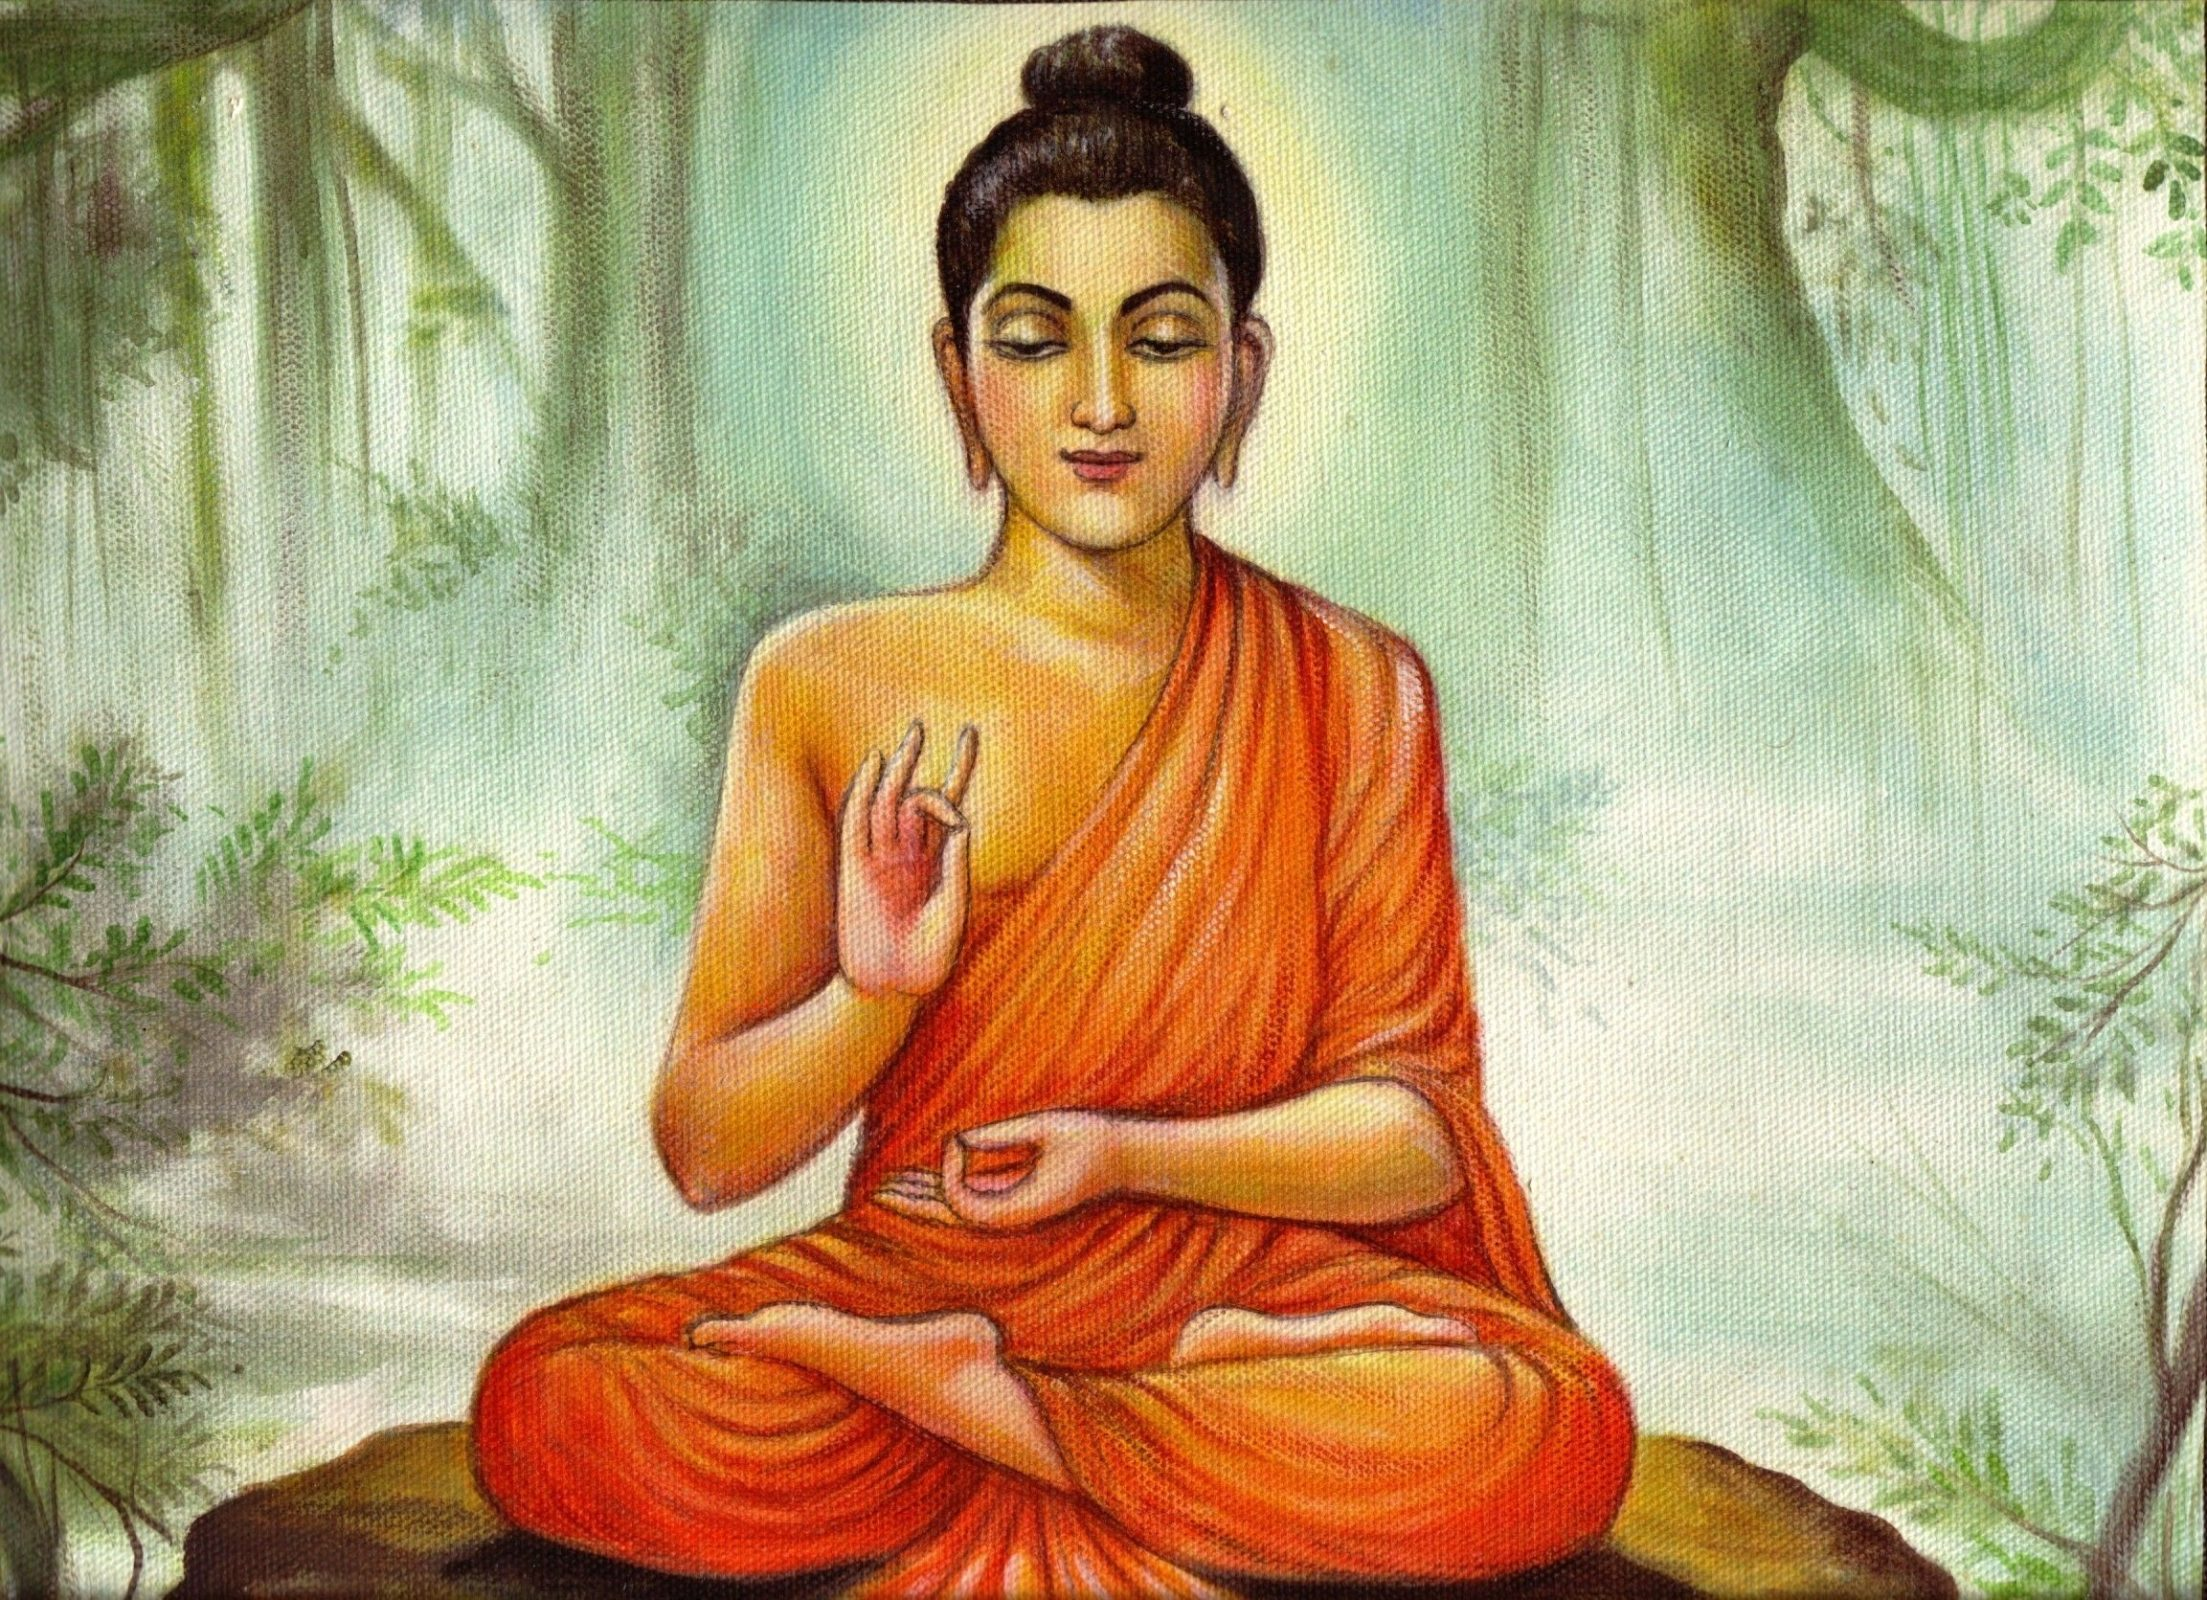 Lord buddha images for mobile 9